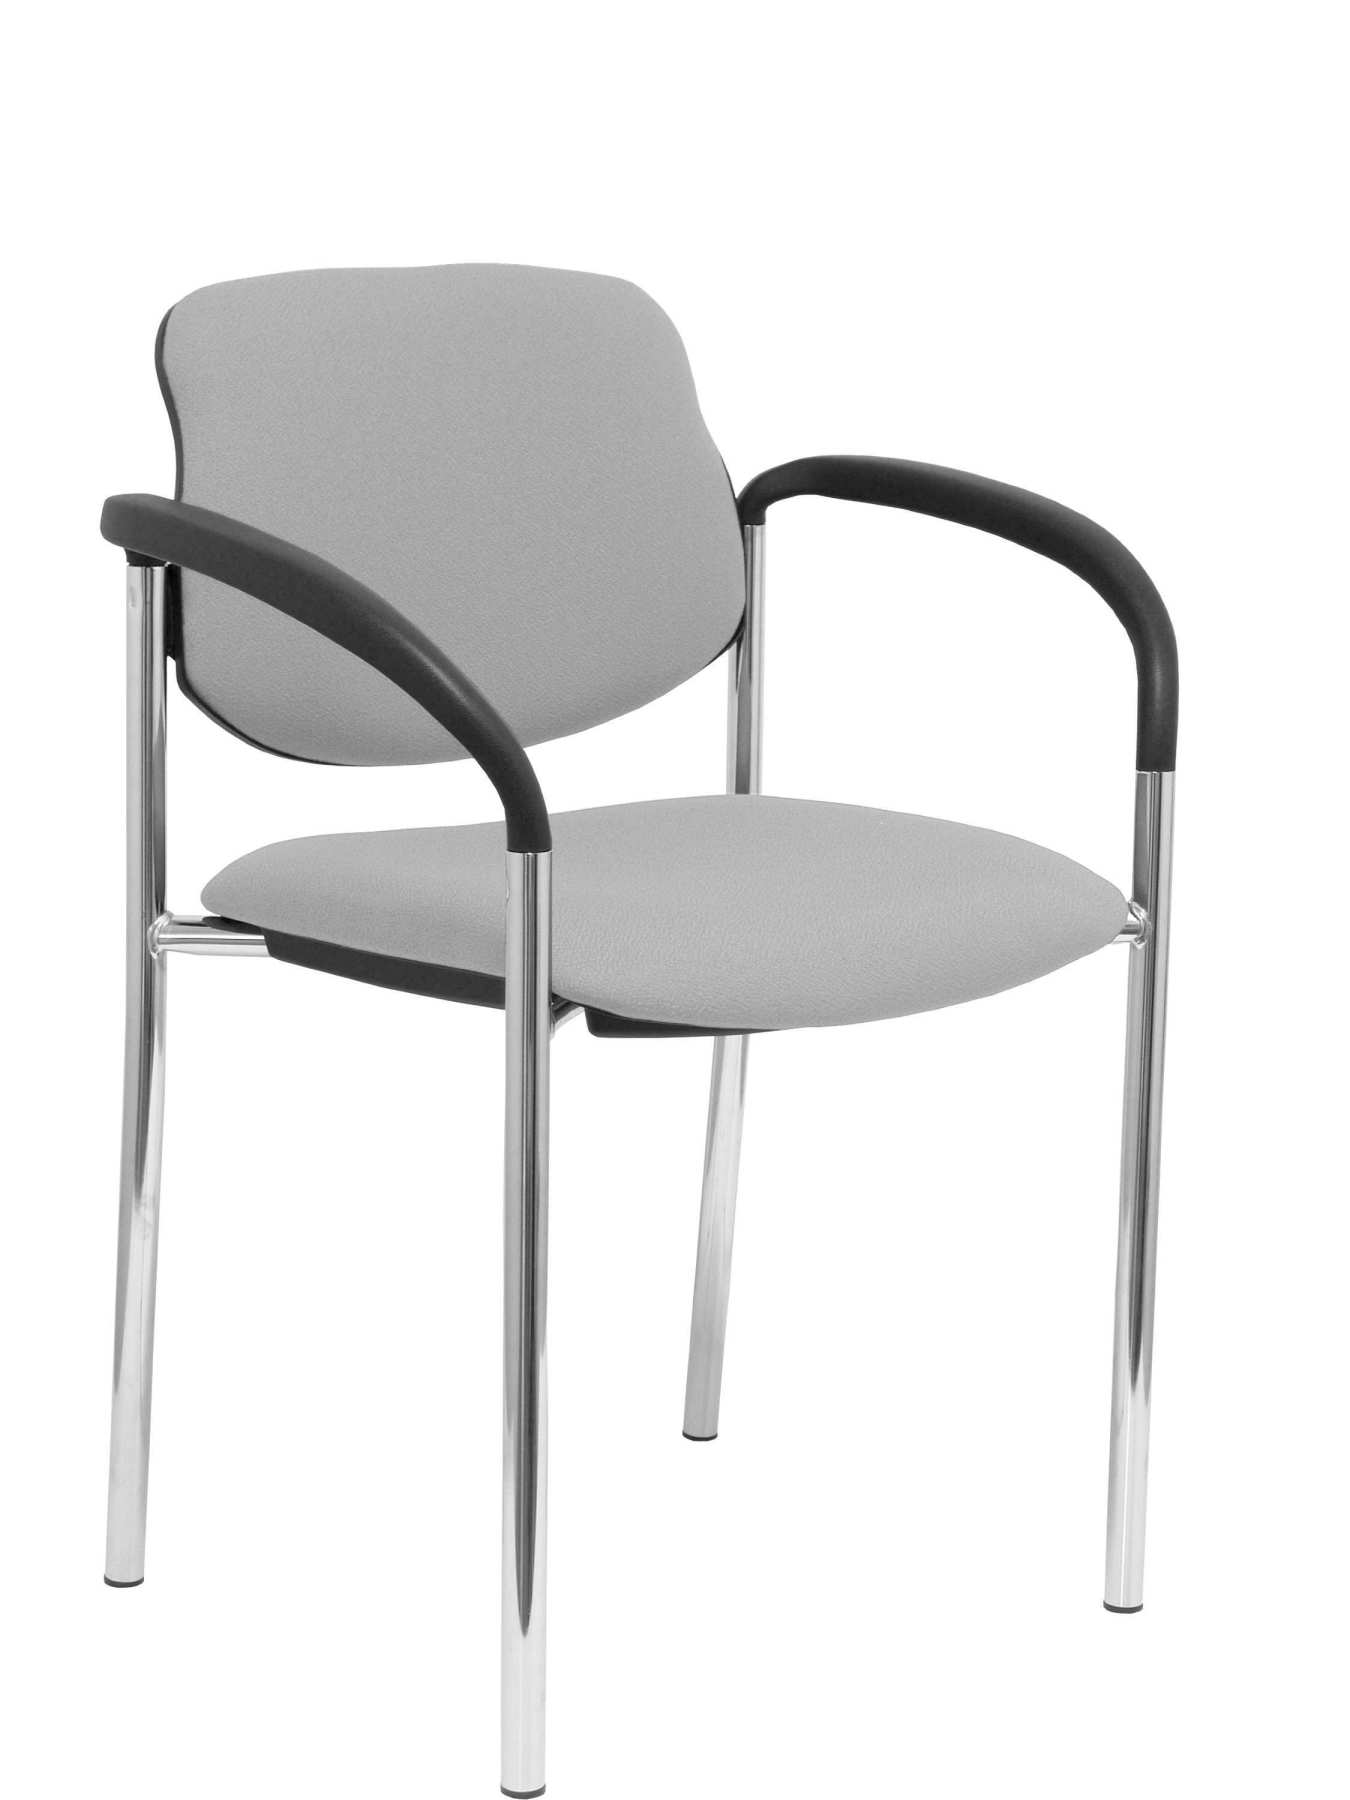 Confident Chair 4-leg And Estructrua Chrome Arms-Seat And Back Upholstered In Fabric BALI Gray PIQ